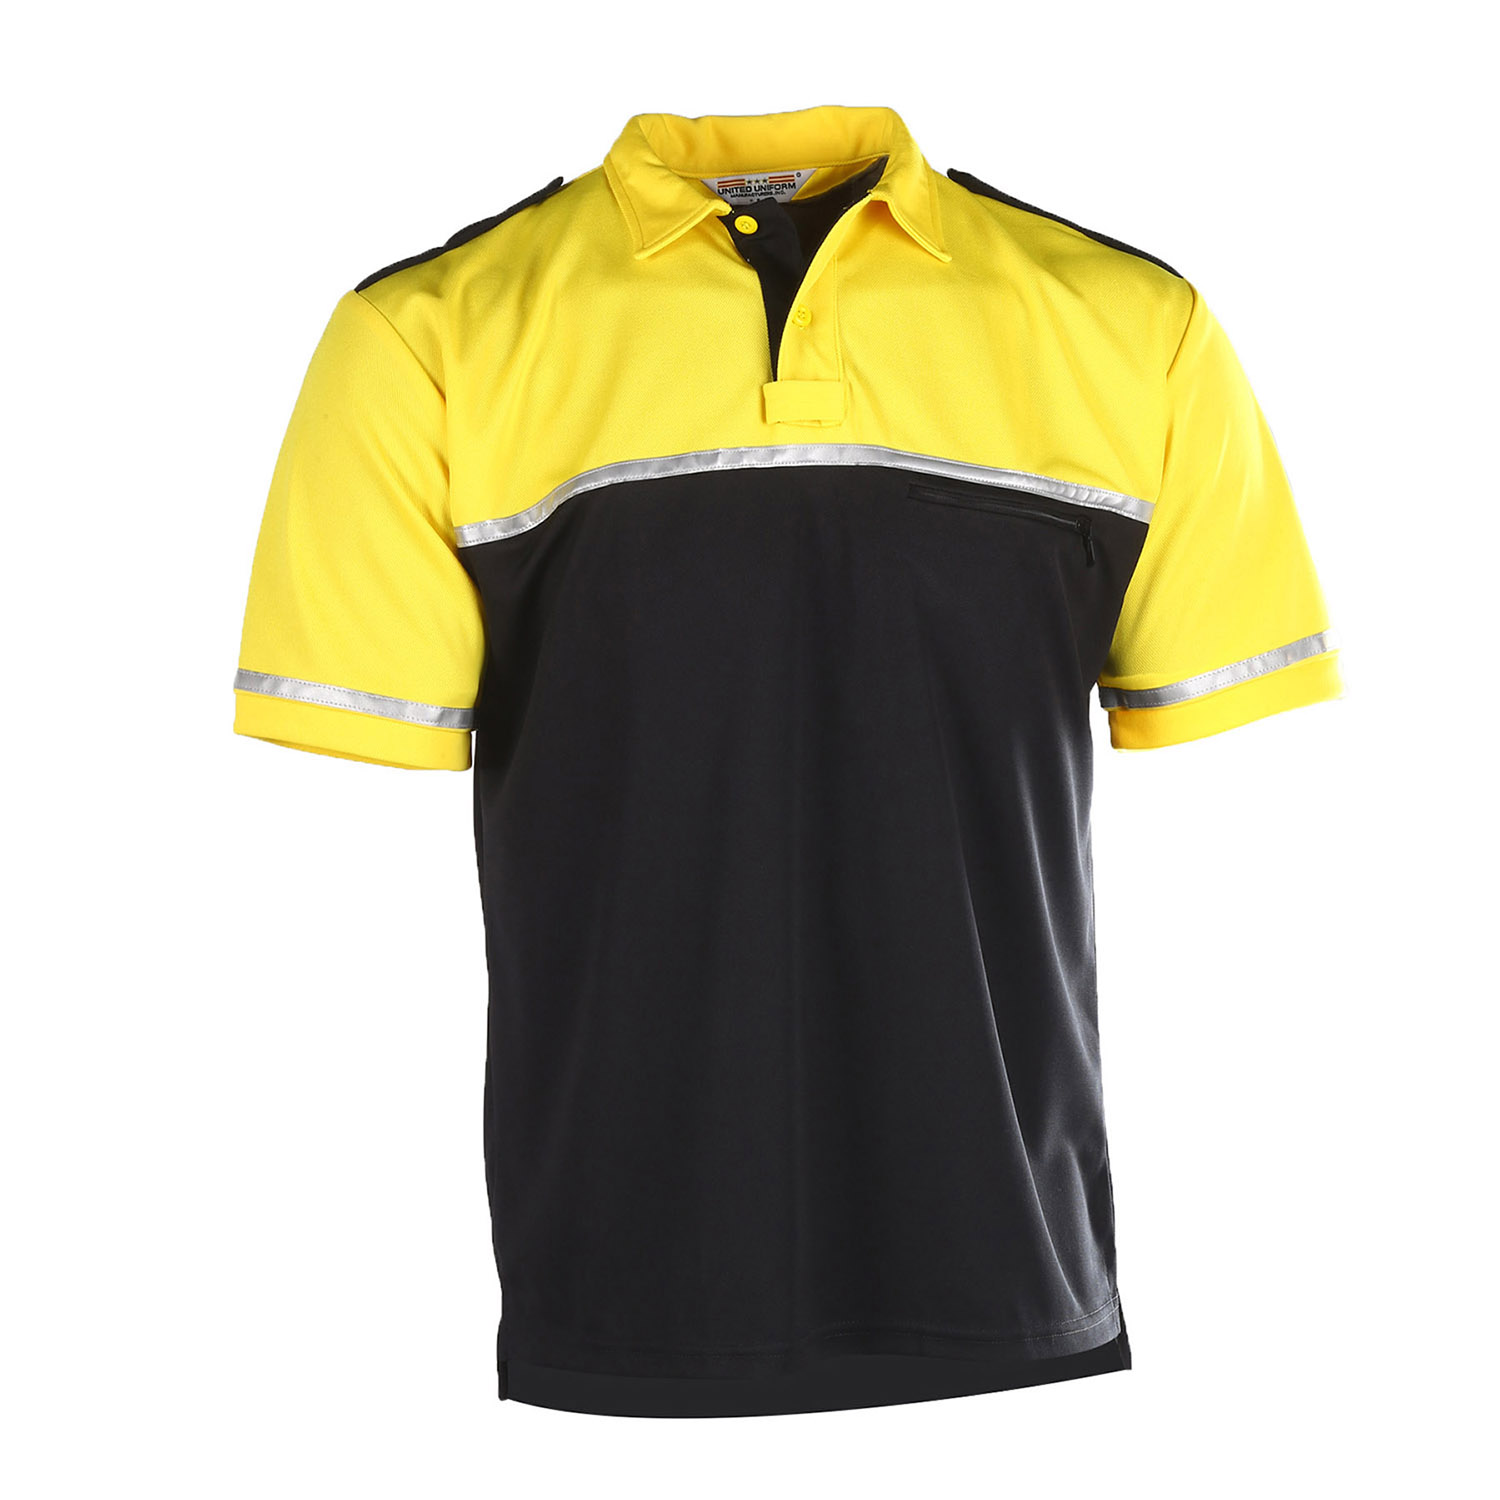 United Uniform Two-Tone Bike Polo